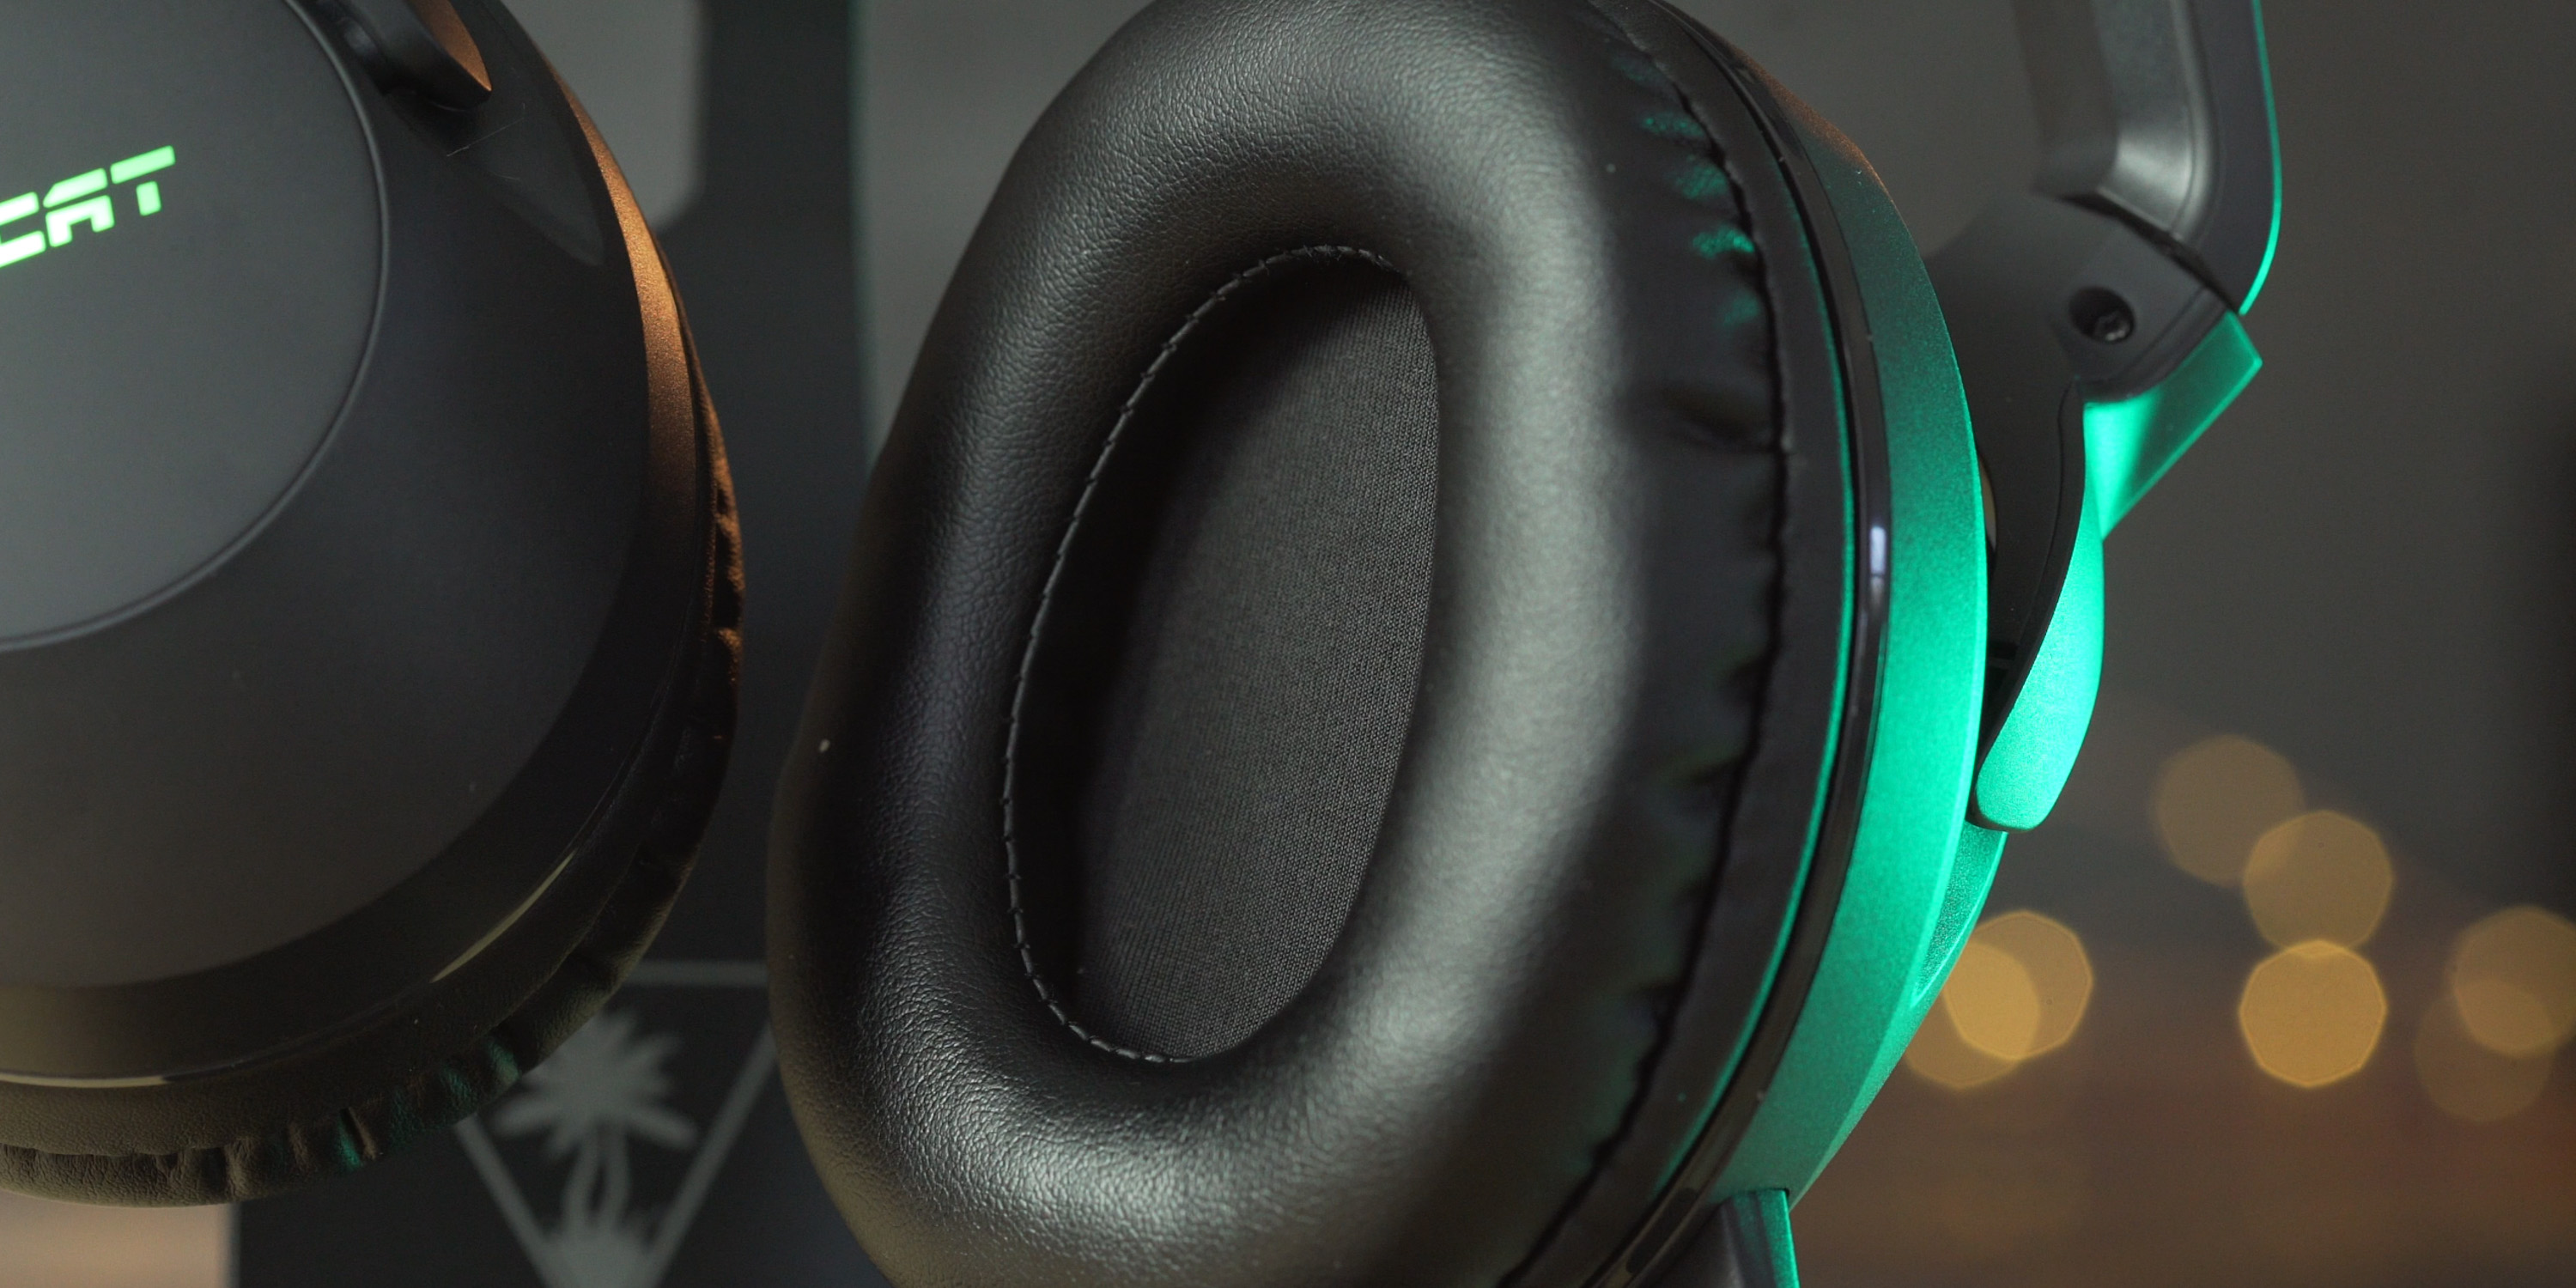 Earcups on the ROCCAT Elo 7.1 Air headset